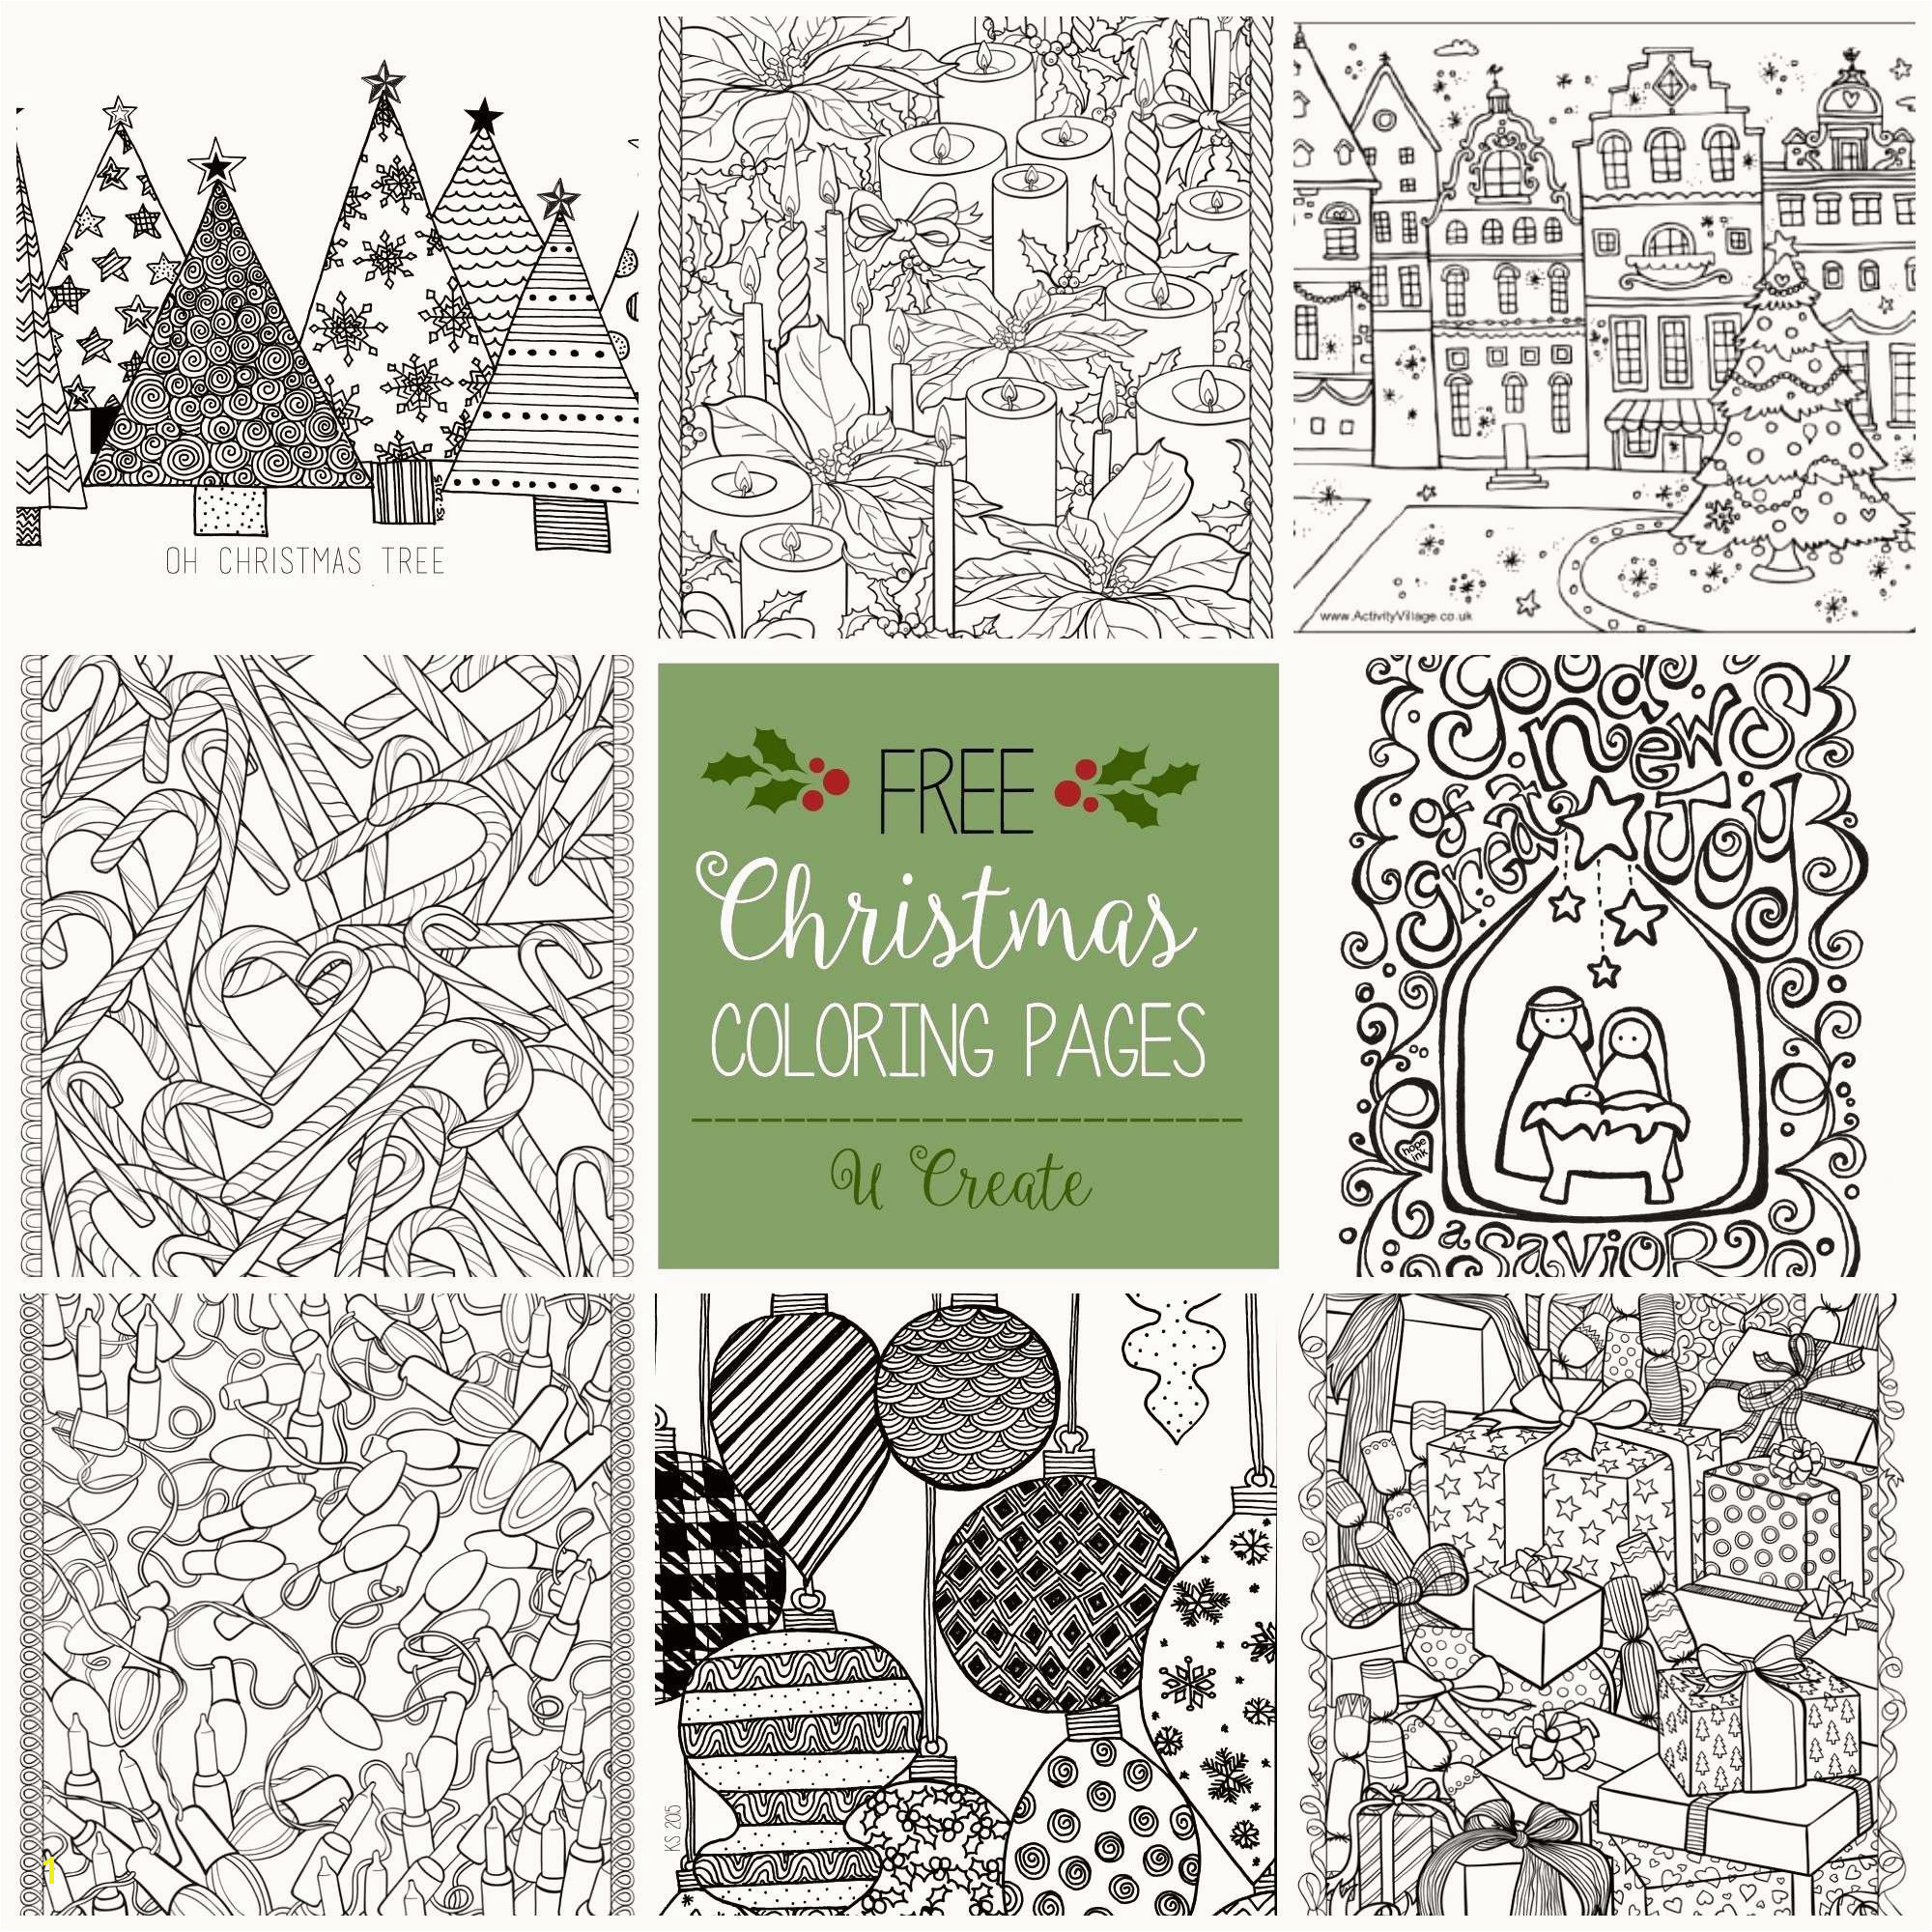 Crayola Coloring Pages Christmas Free Christmas Coloring Unique Free Printable Christmas Coloring